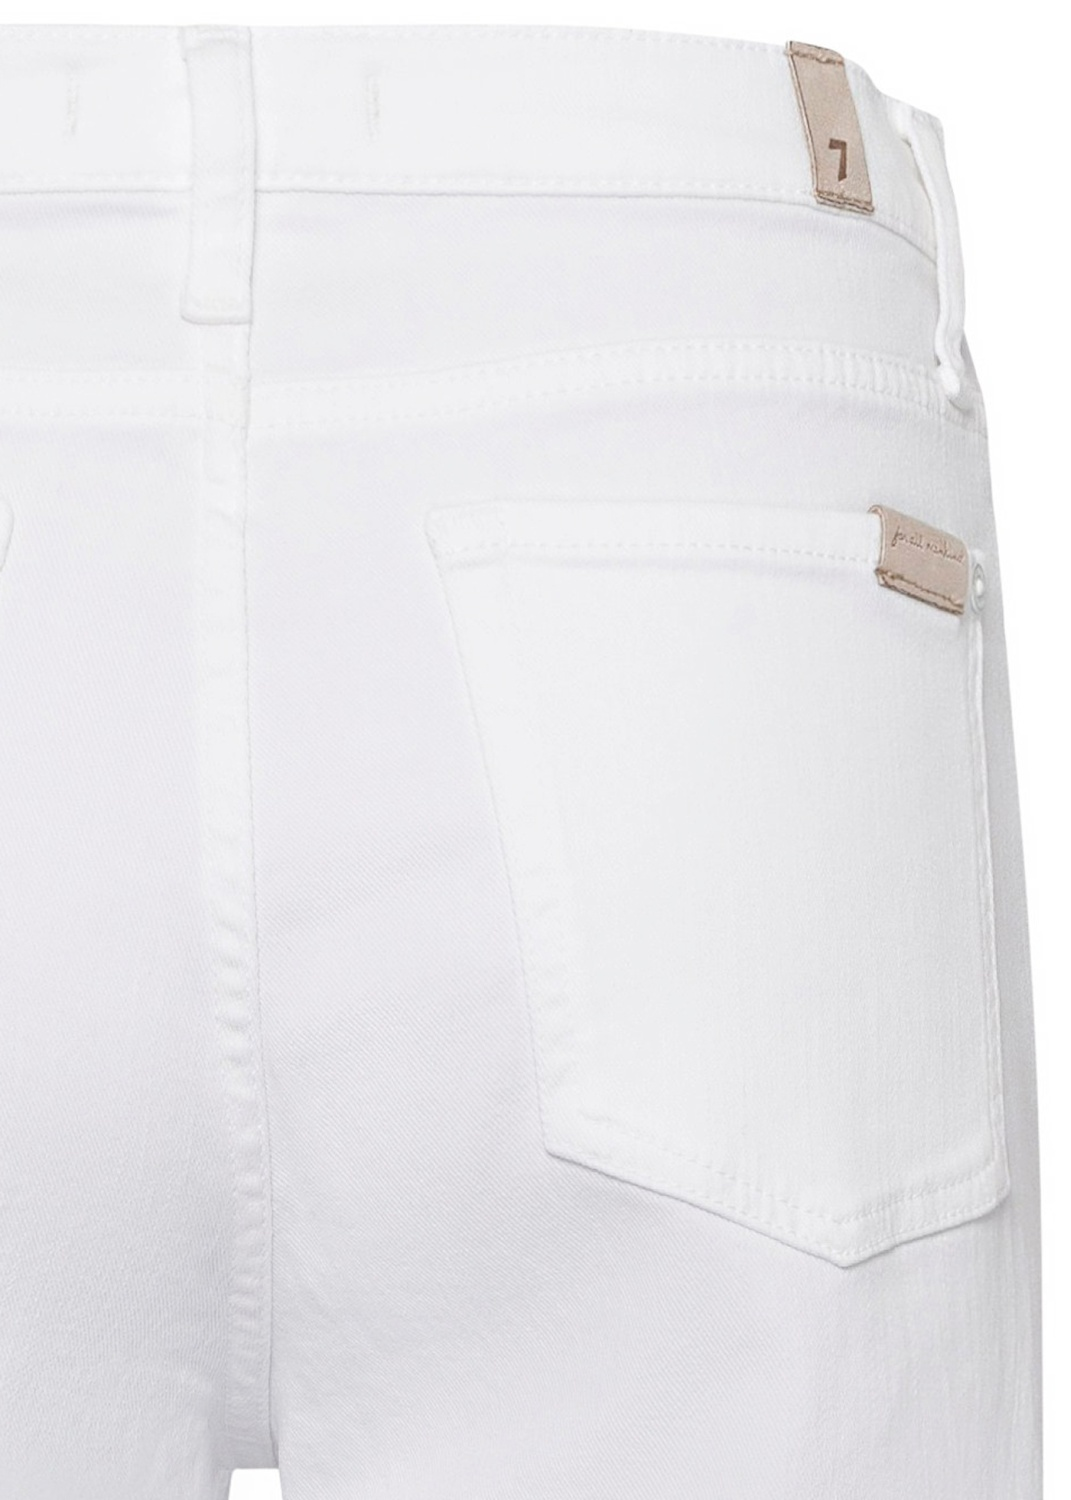 CROPPED ALEXA Left Hand Pure White with Raw Cut Frayed image number 3